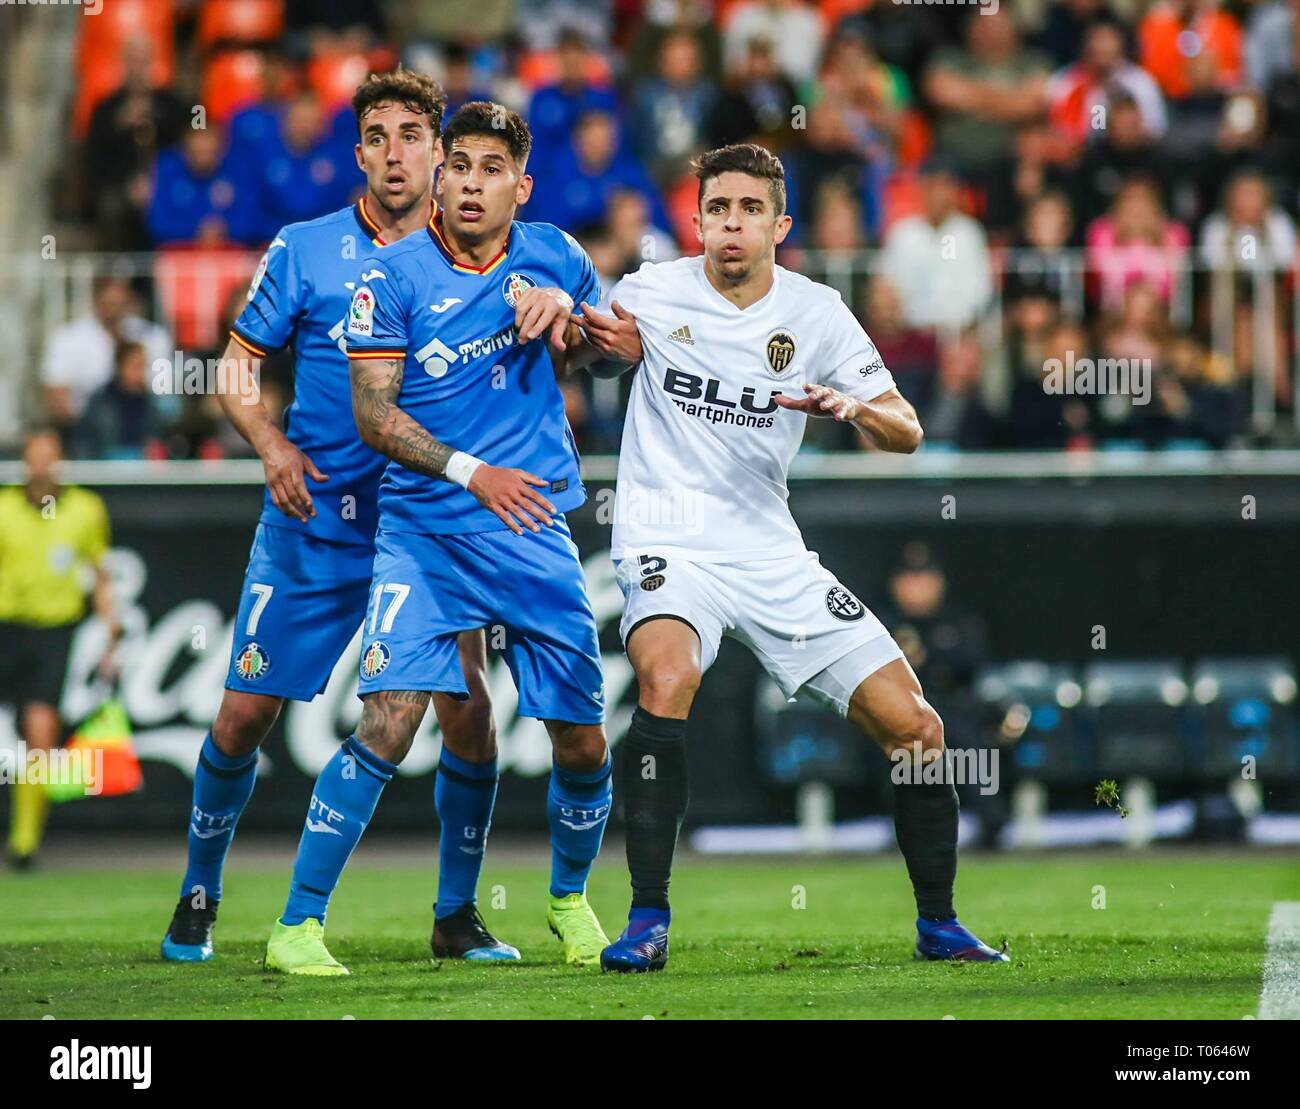 Valencia, Spain. 17th Mar, 2019. Olivera and Paulista  during the football match between Valencia CF and Getafe CF on March 17, 2019 at Mestalla Stadium in Valencia, Spain.  Cordon Press Credit: CORDON PRESS/Alamy Live News - Stock Image